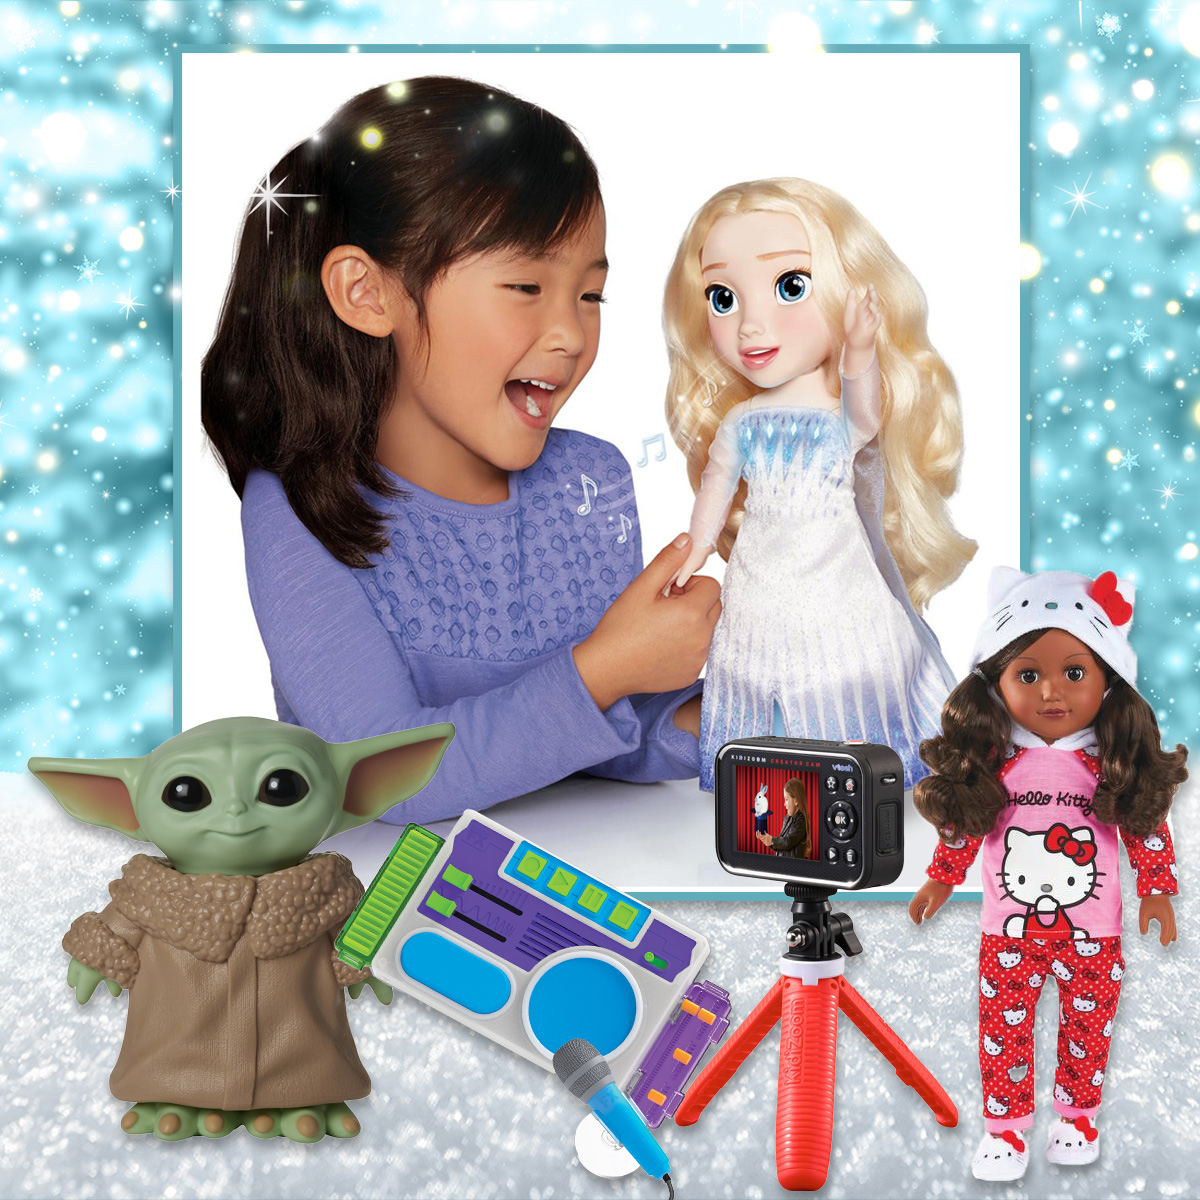 The 36 Hottest Holiday Toys for 2020—Picked by Kids